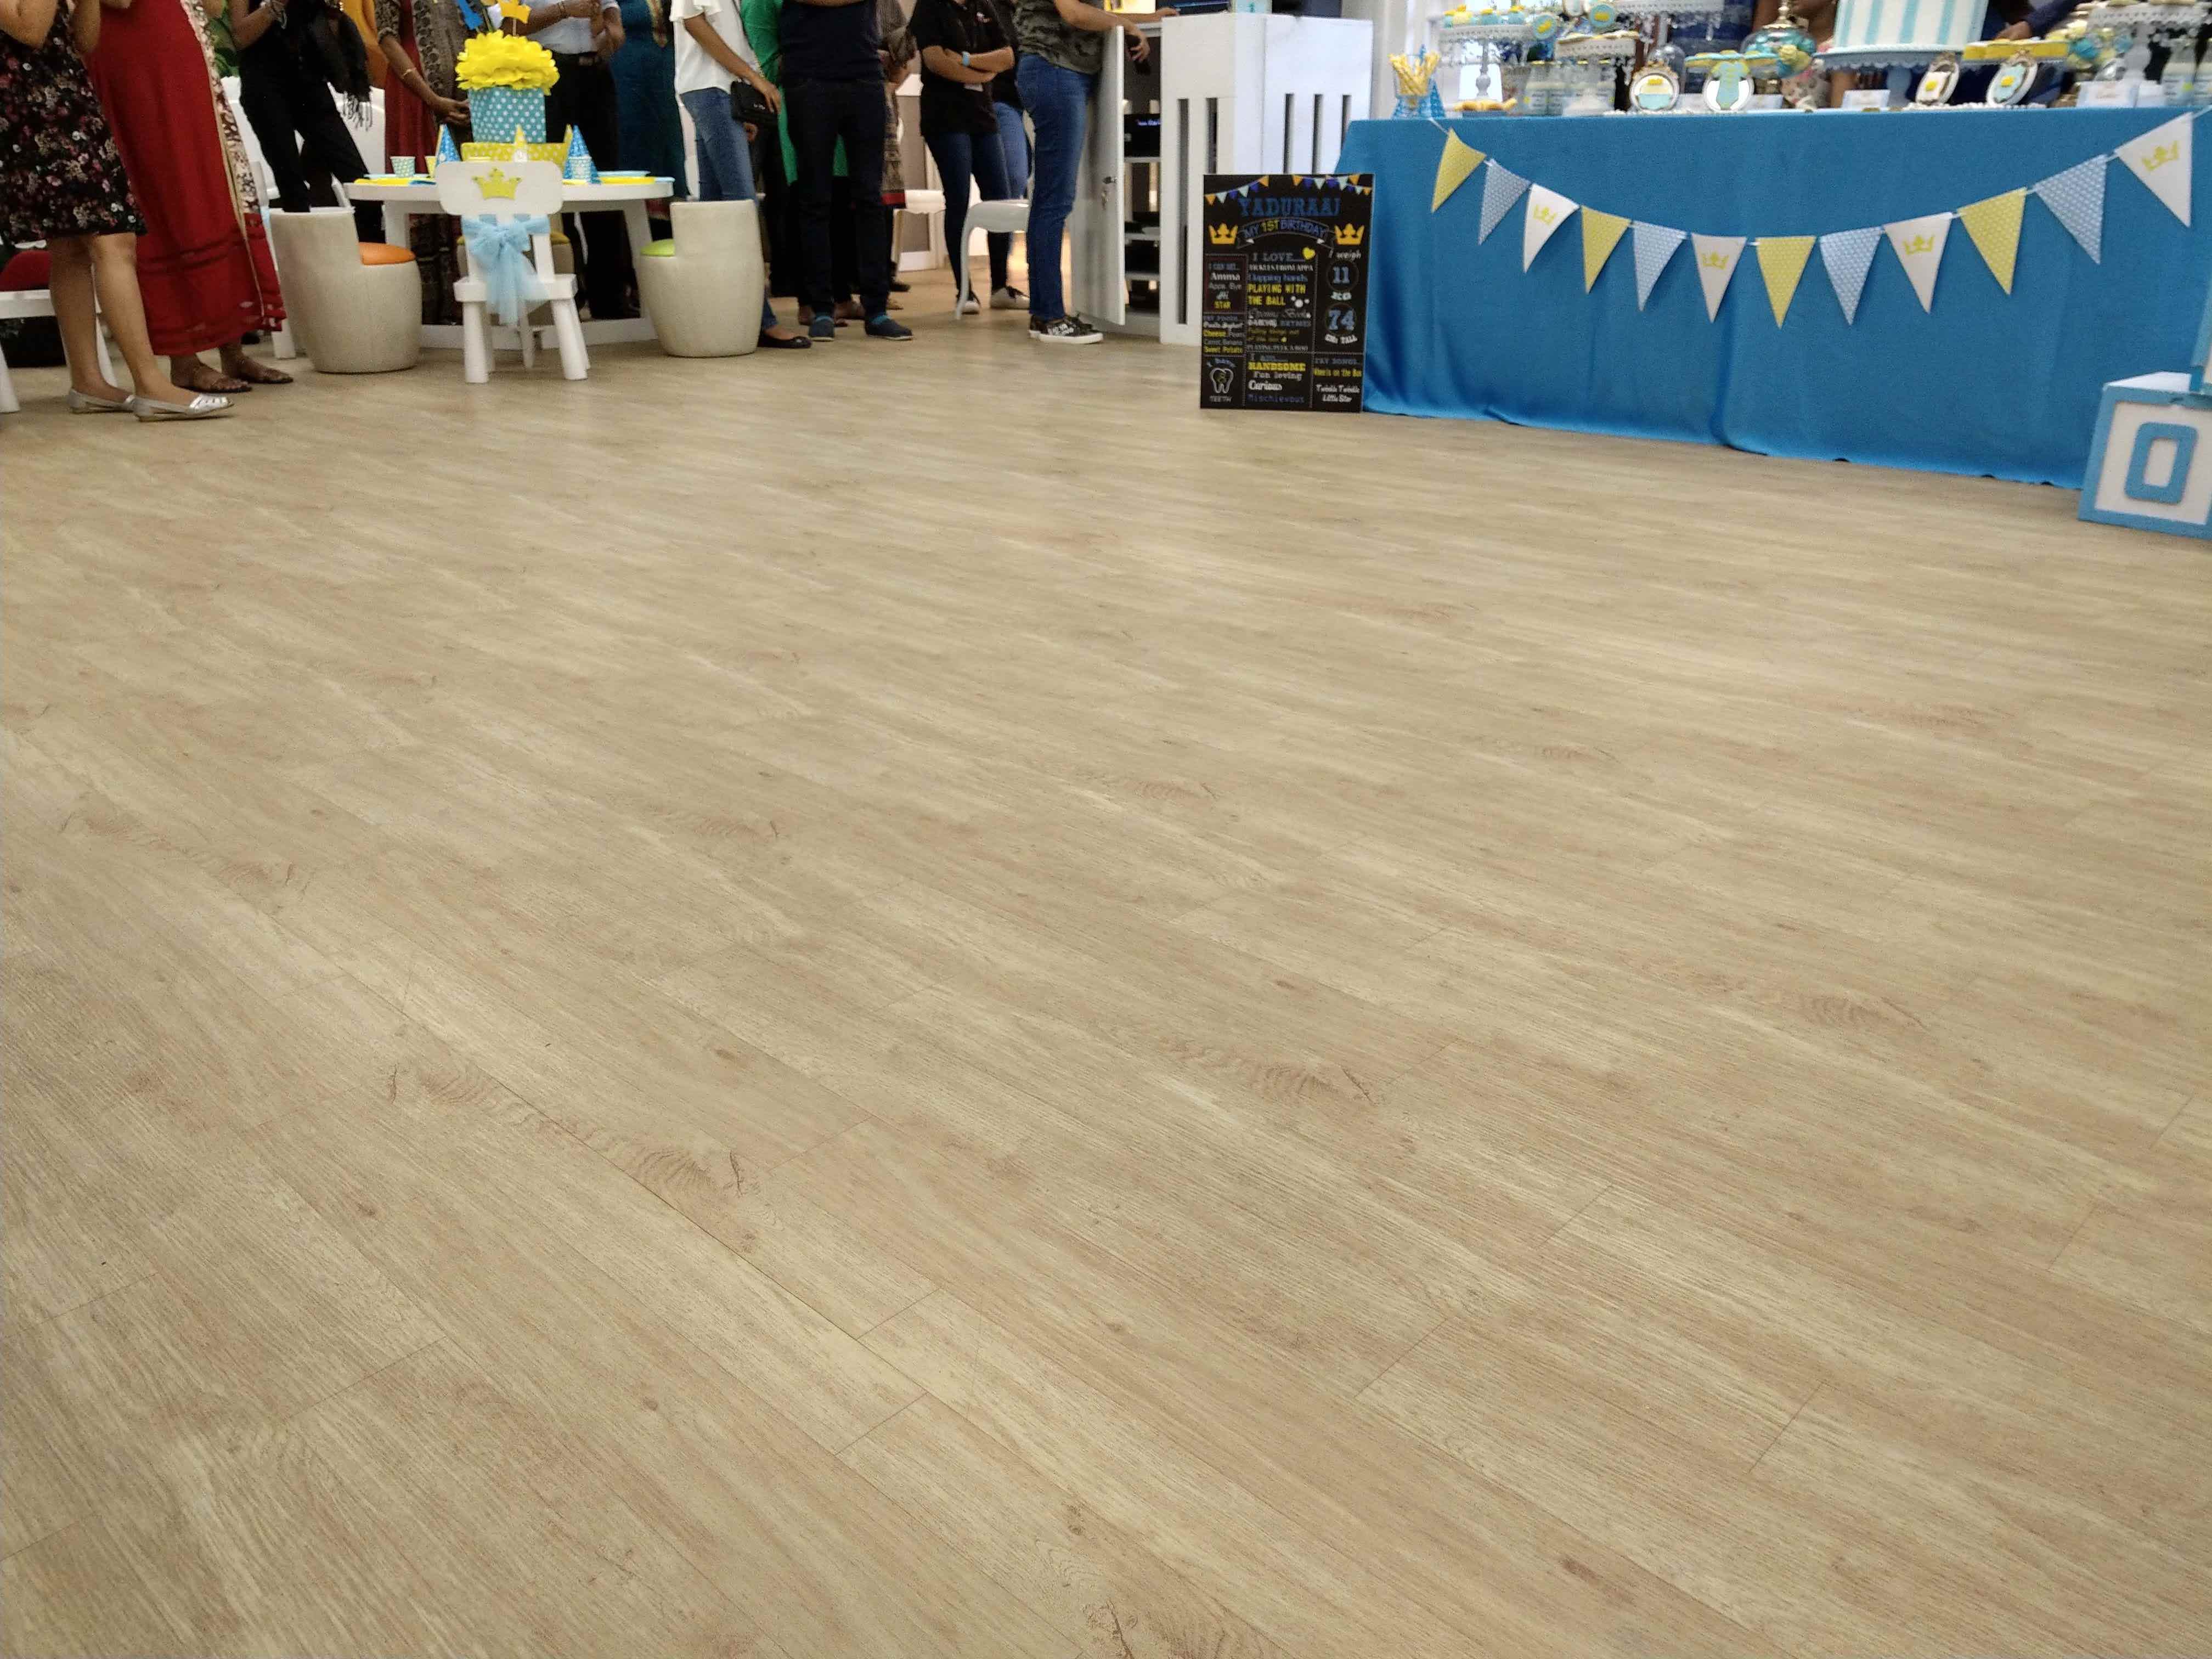 Need Flooring advice? Ask our experts for free. Glad to help you!